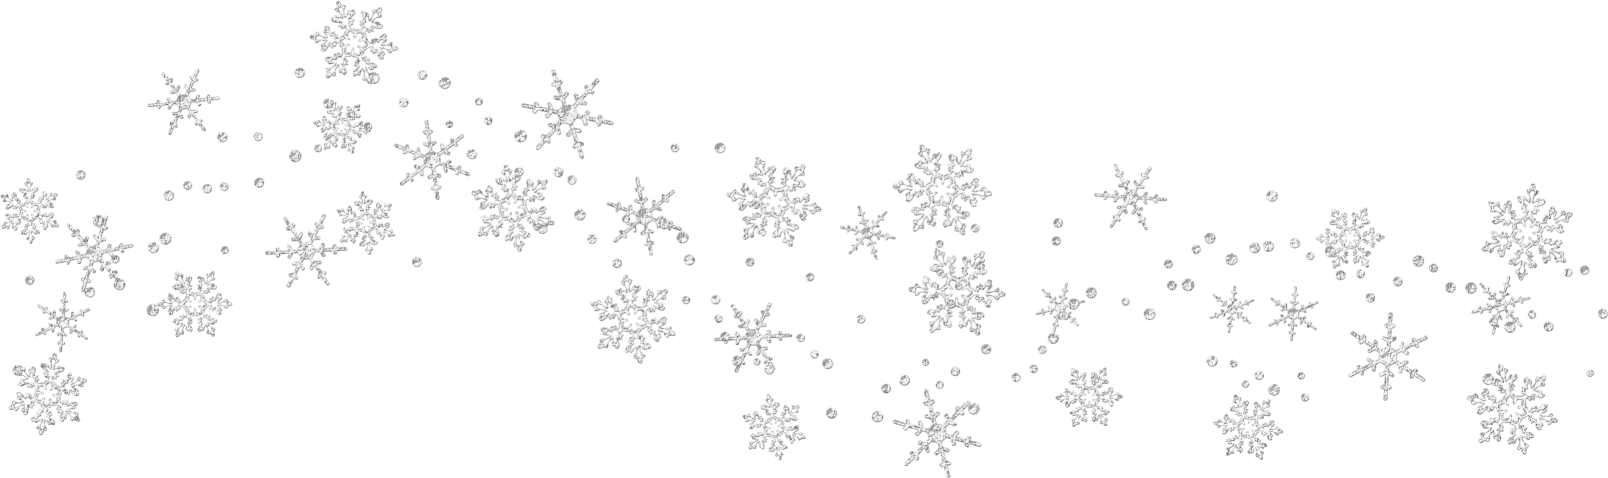 snowflakes falling png transparent